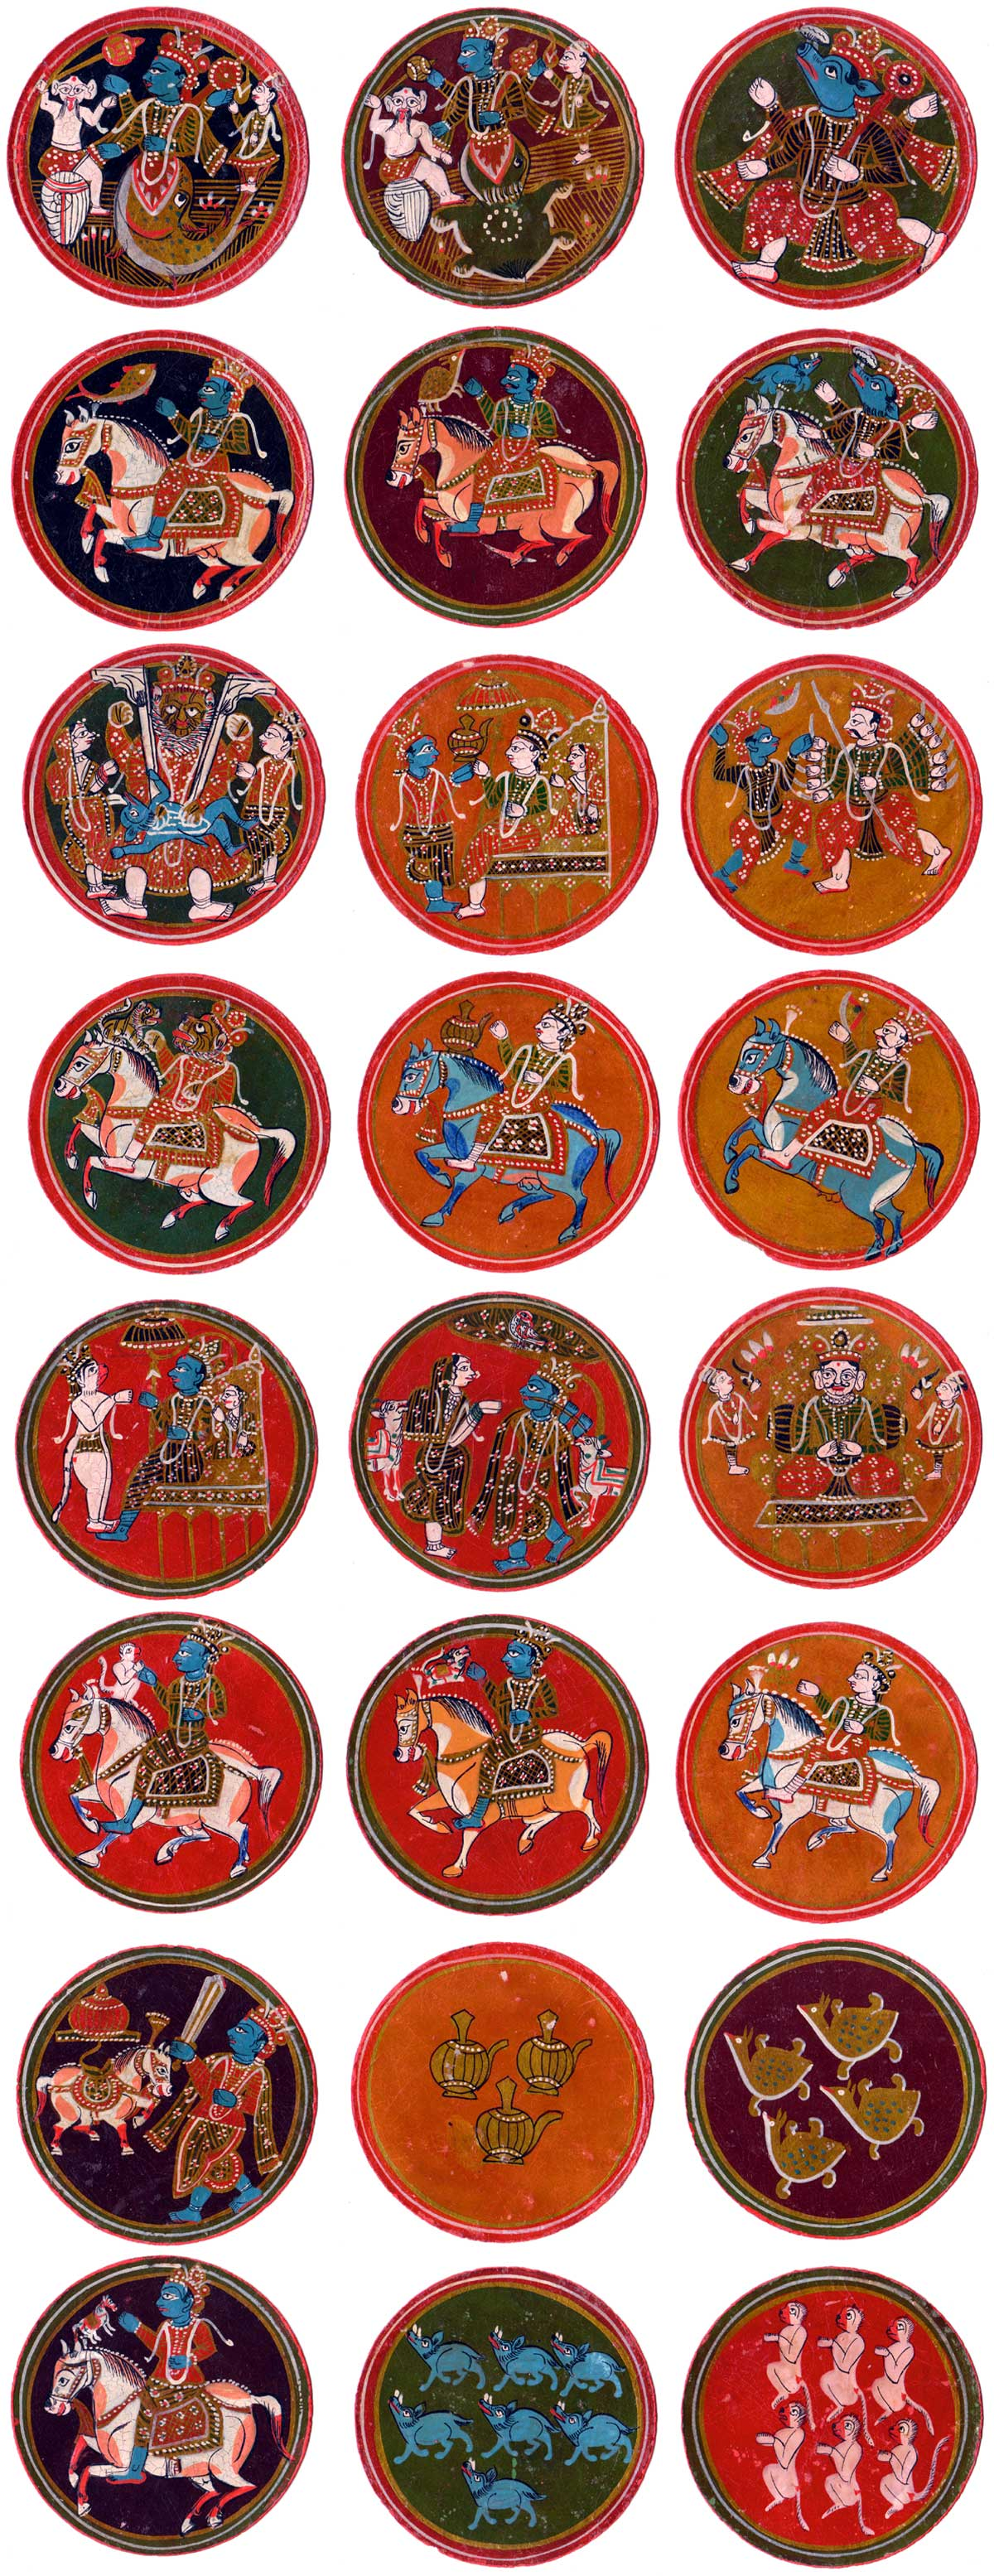 'Ganjifa' playing cards made in Sheopor in the North of Madhya Pradesh province in Central India